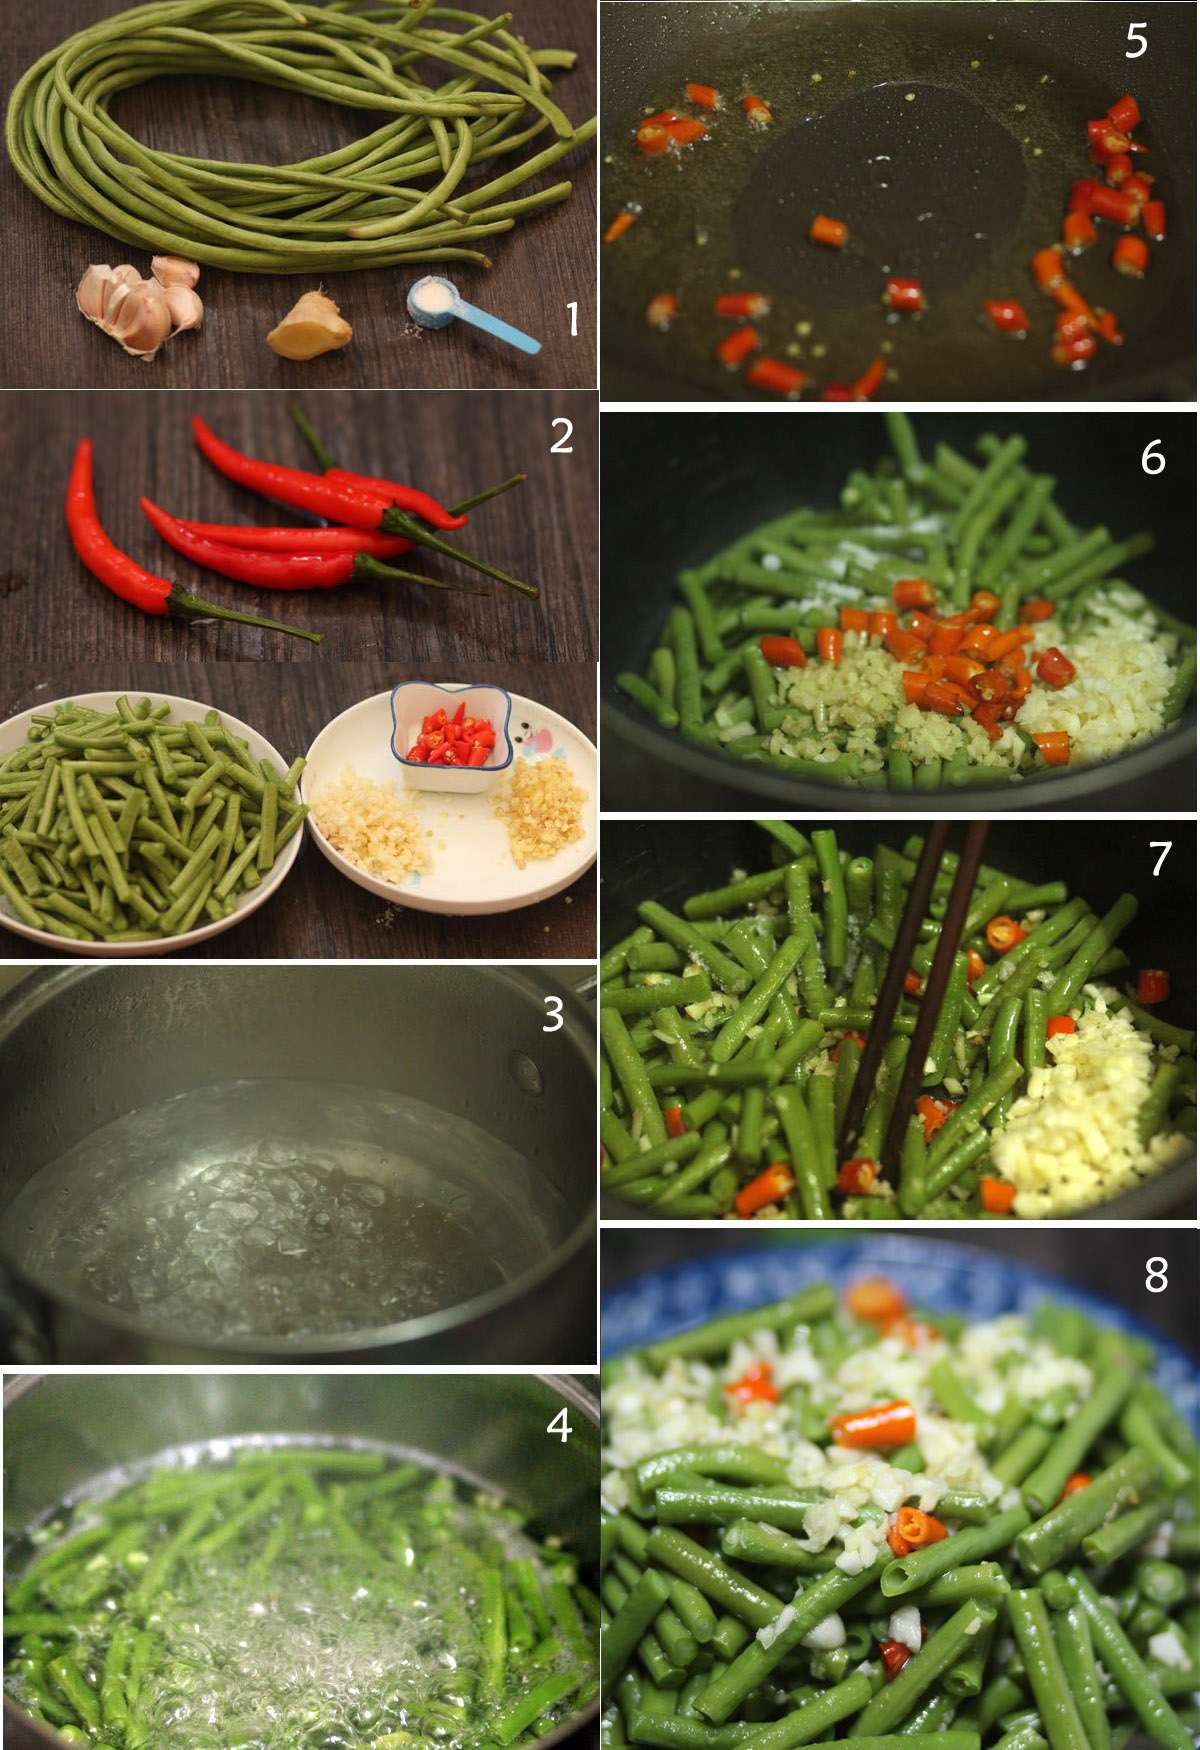 1) Ingredients: cowpea, garlic, salt,2) red chili sections, cowpea sections, , chopped garlic, ginger,3) boiling water,4) add cowpea secions,5)add chili to a wok with oil,6) cowpea, chili, garlic, giner in a bowl,7) mixed them,8) It is done